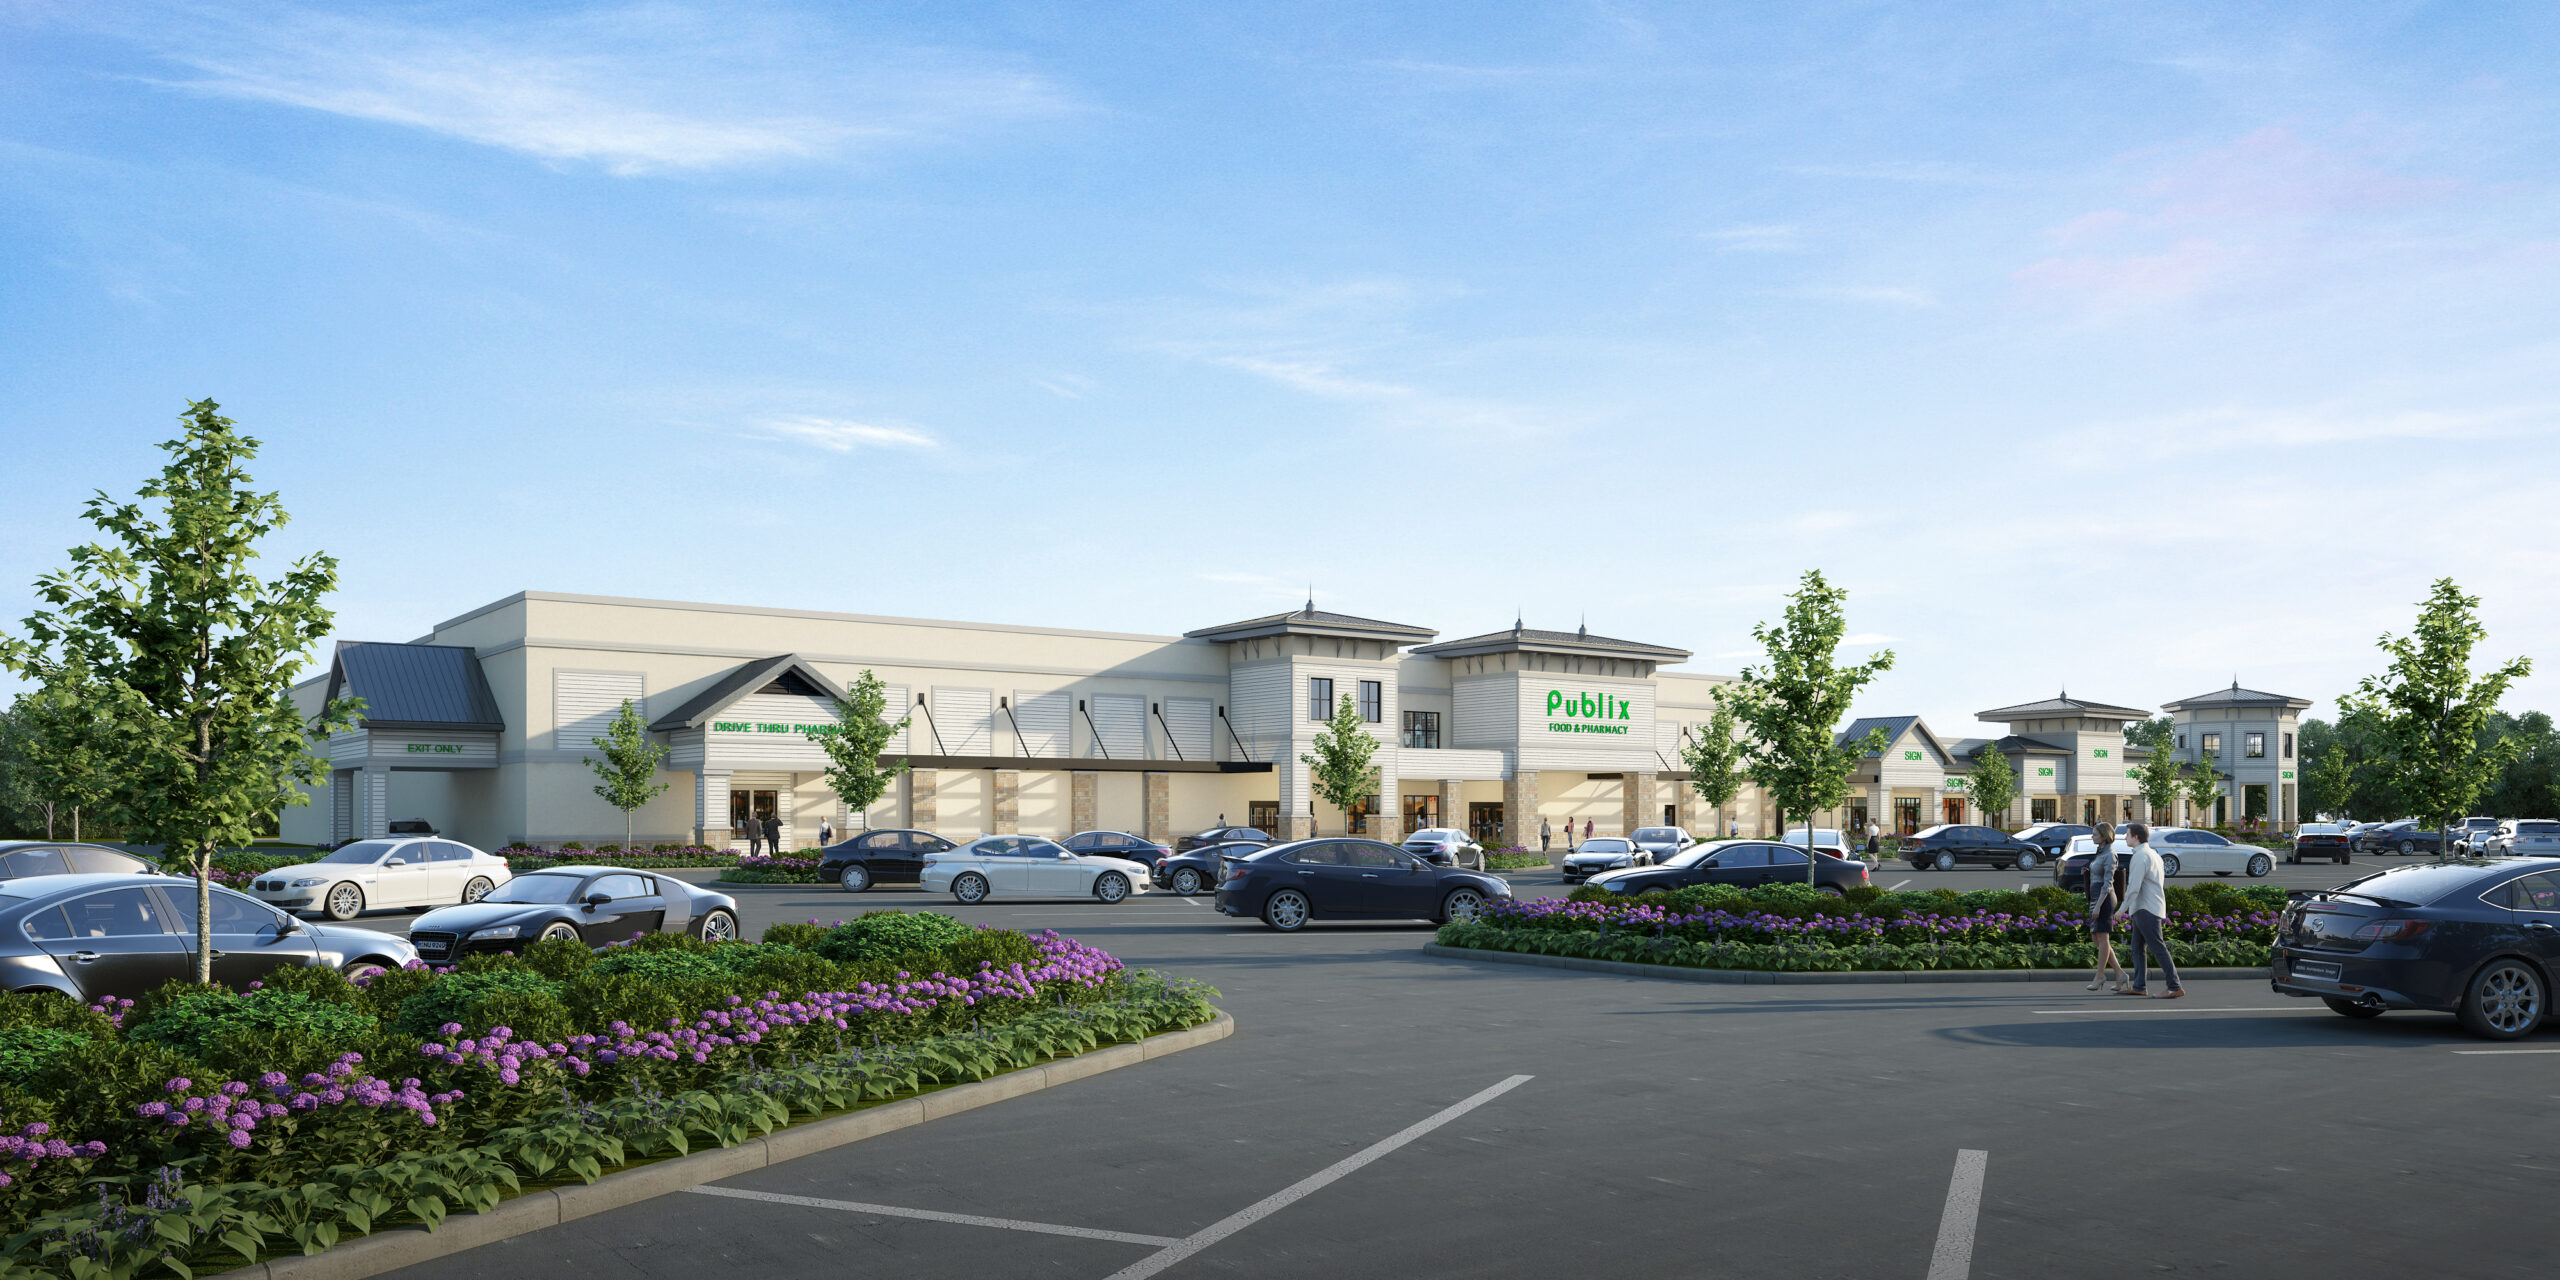 PEBB Enterprises Unveils Plans for New Publix-Anchored Retail Development near Jacksonville